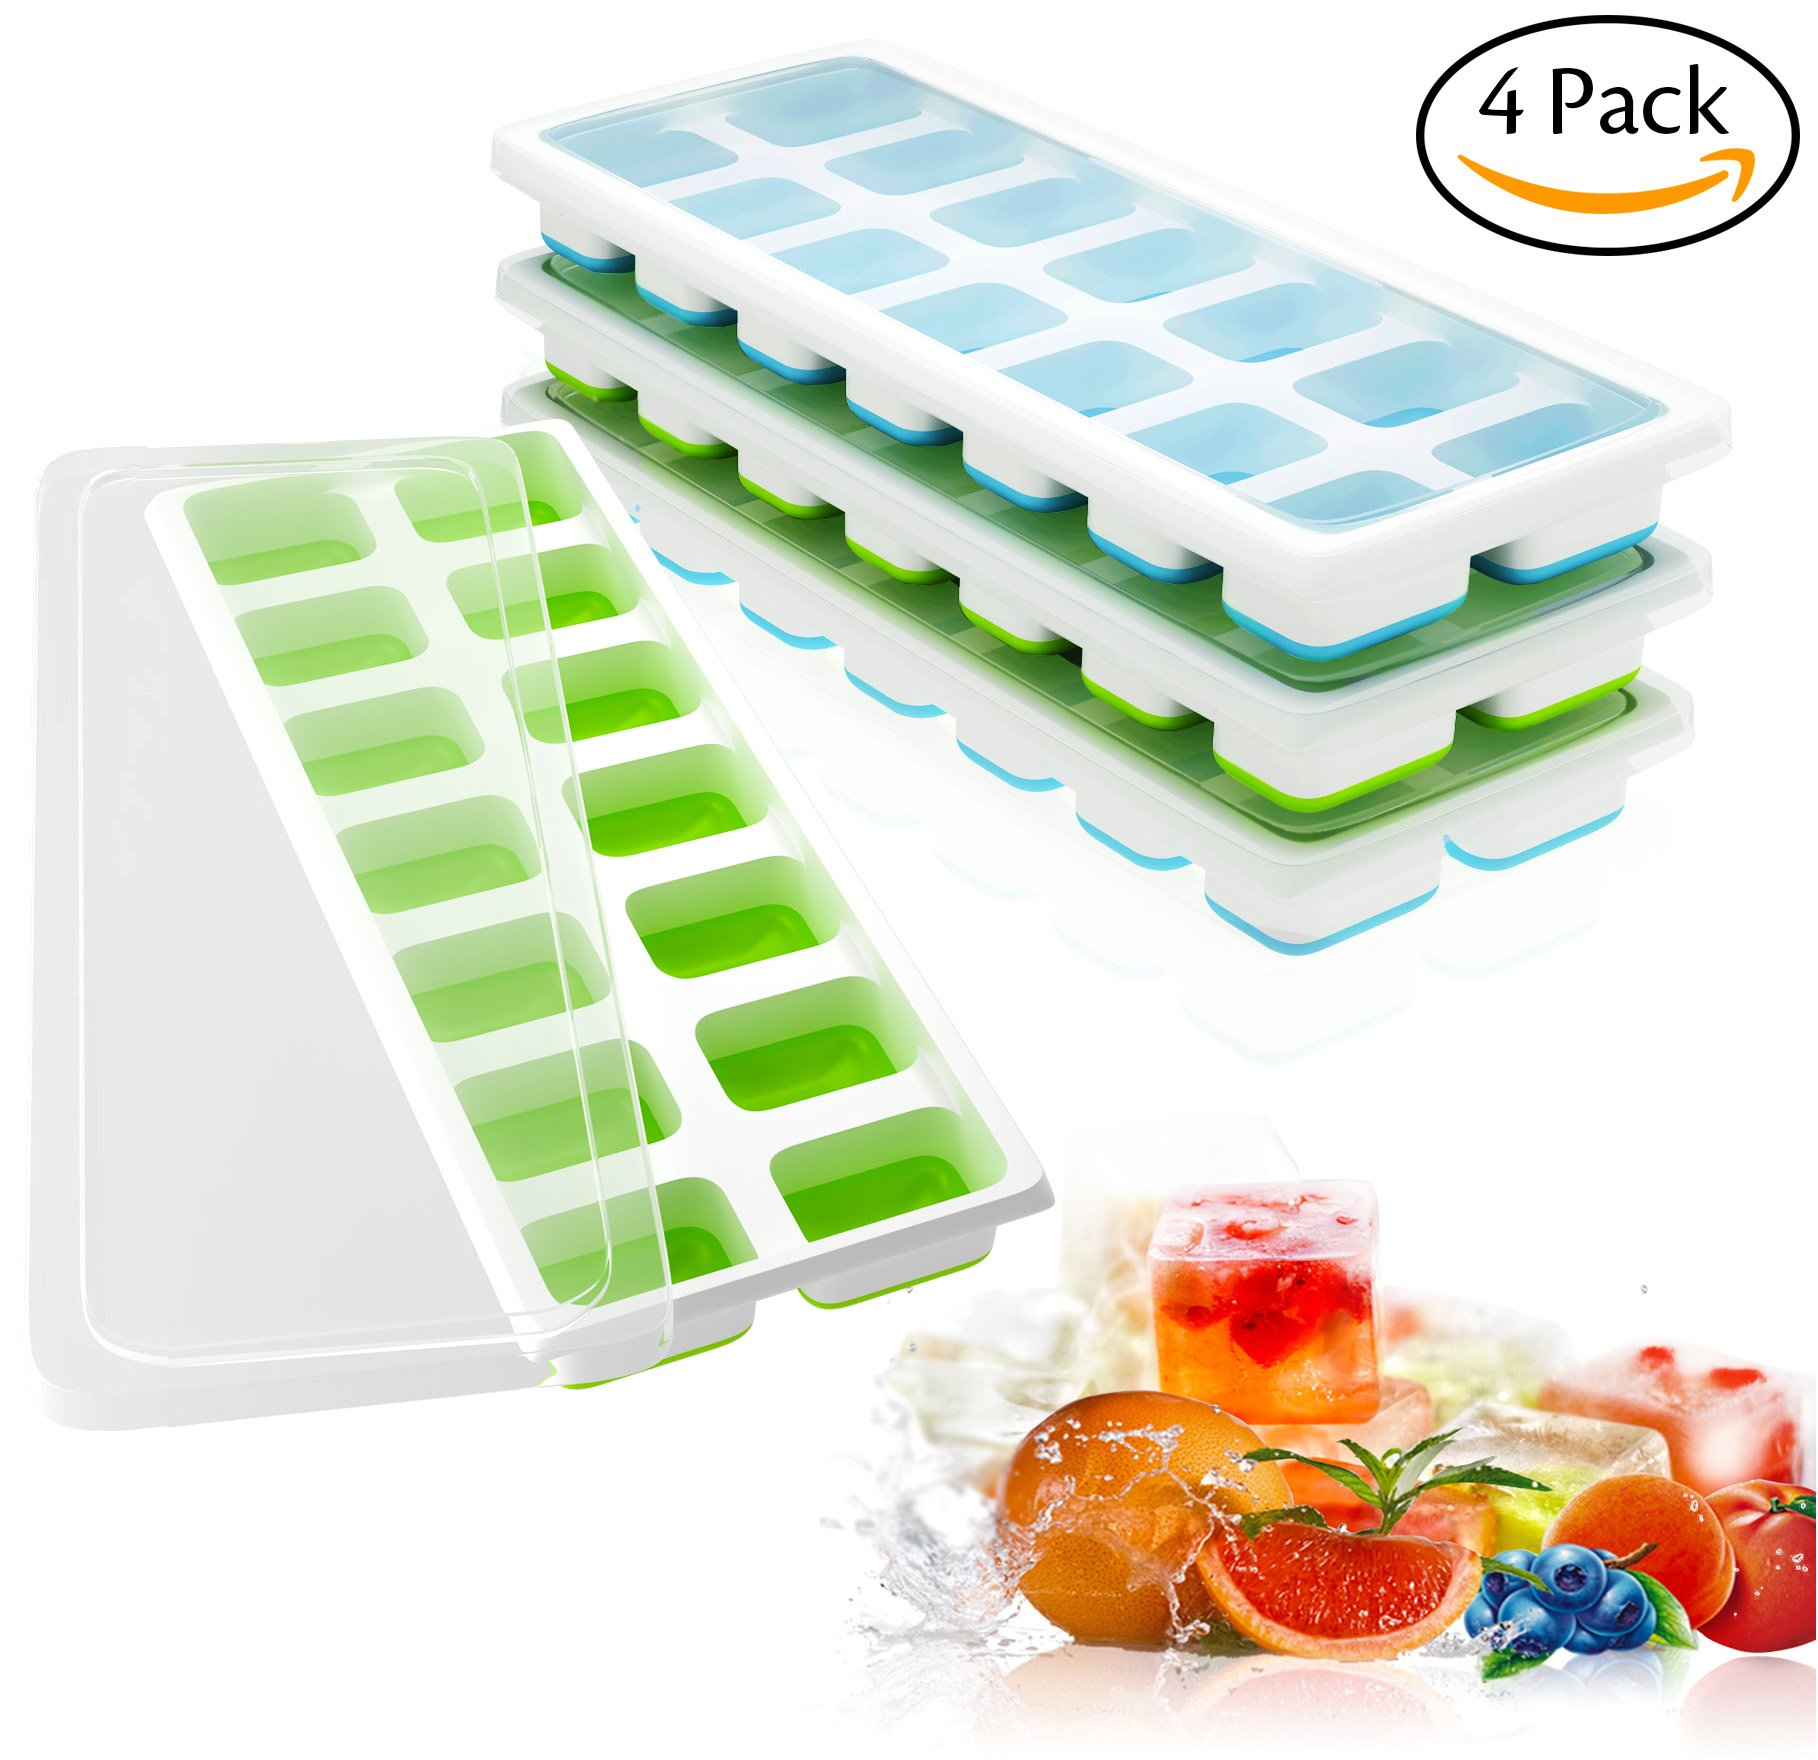 Ouddy 4 Pack Ice Cube Trays with Lid, Silicone Ice Cube Molds, 14-Ice Trays Can Make 56 Ice Cubes, BPA Free Nontoxic and Safe, Stackable Durable (Blue & Green)